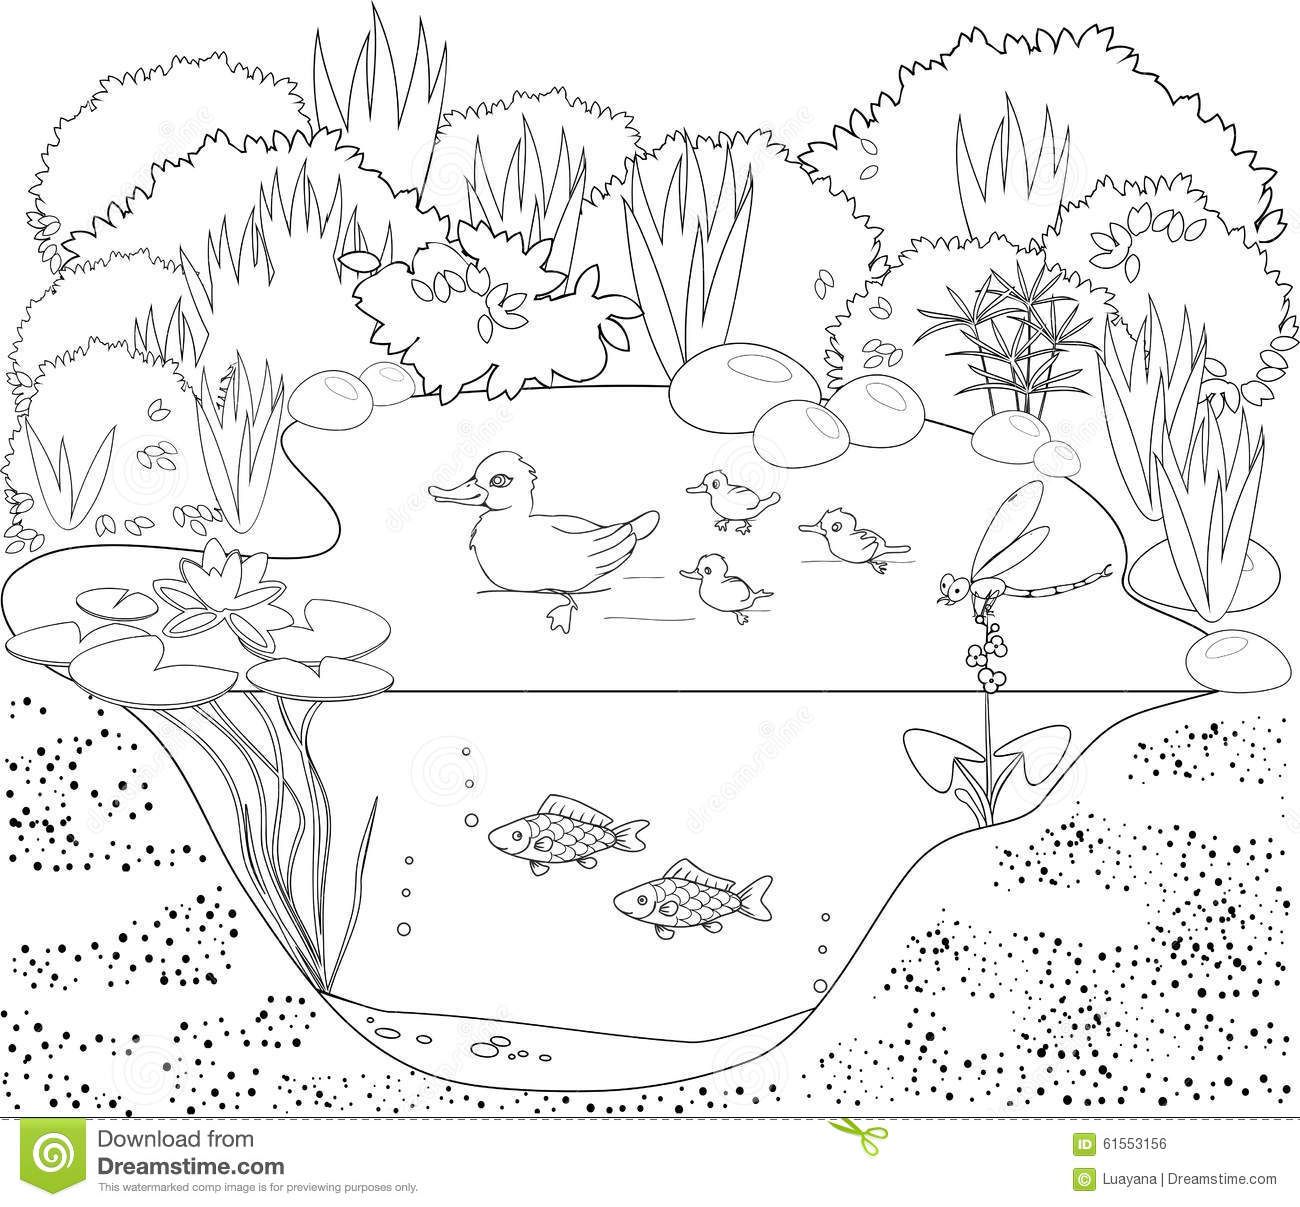 Pond coloring #14, Download drawings